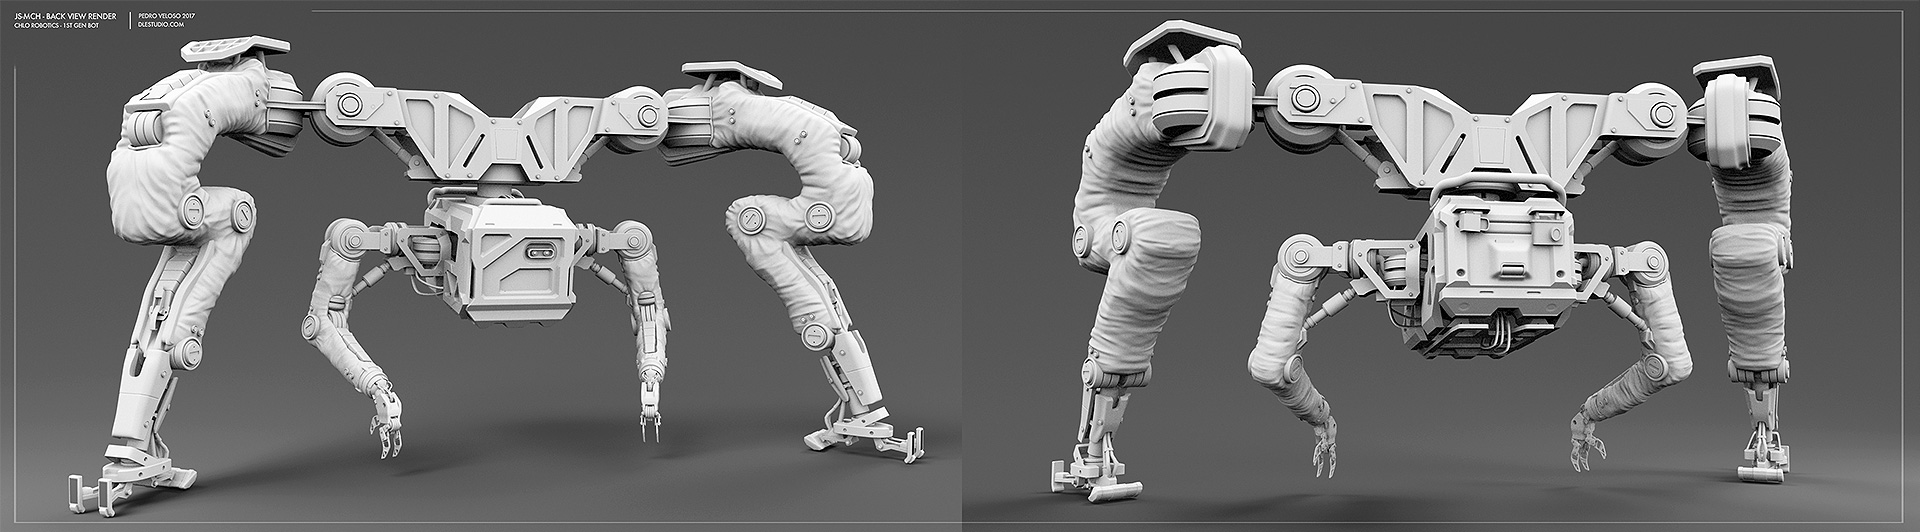 pedro_veloso_dlestudio_js_mch_model_sheet_ao